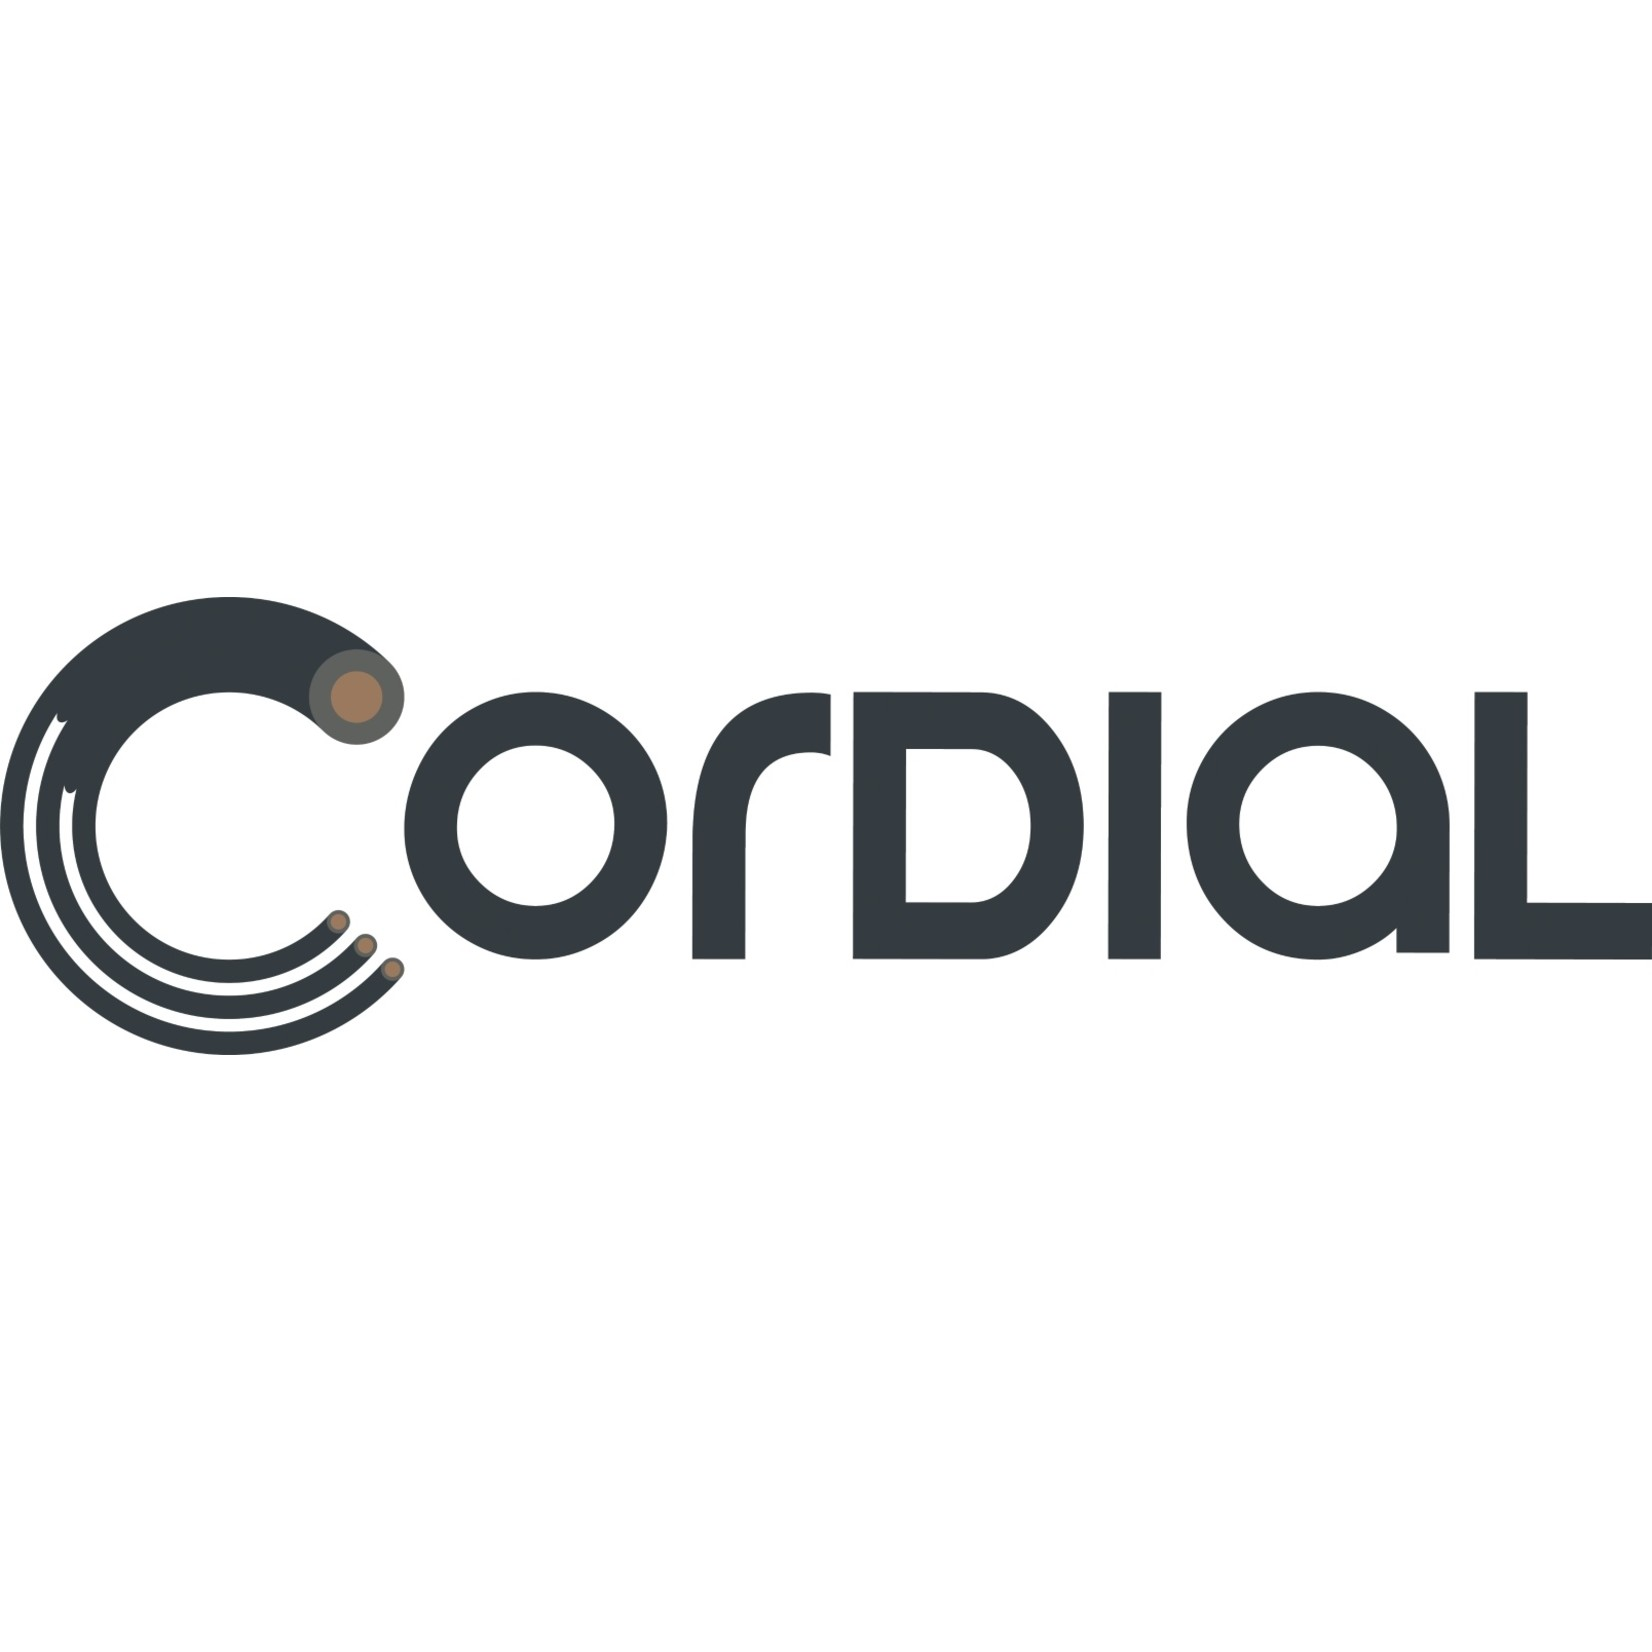 Cordial Cables Cordial Cables 8-Channel Analog Breakout Cable, Essentials Series - TASCAM D-Sub 25 to XLRF Connectors, 5-Foot Cable